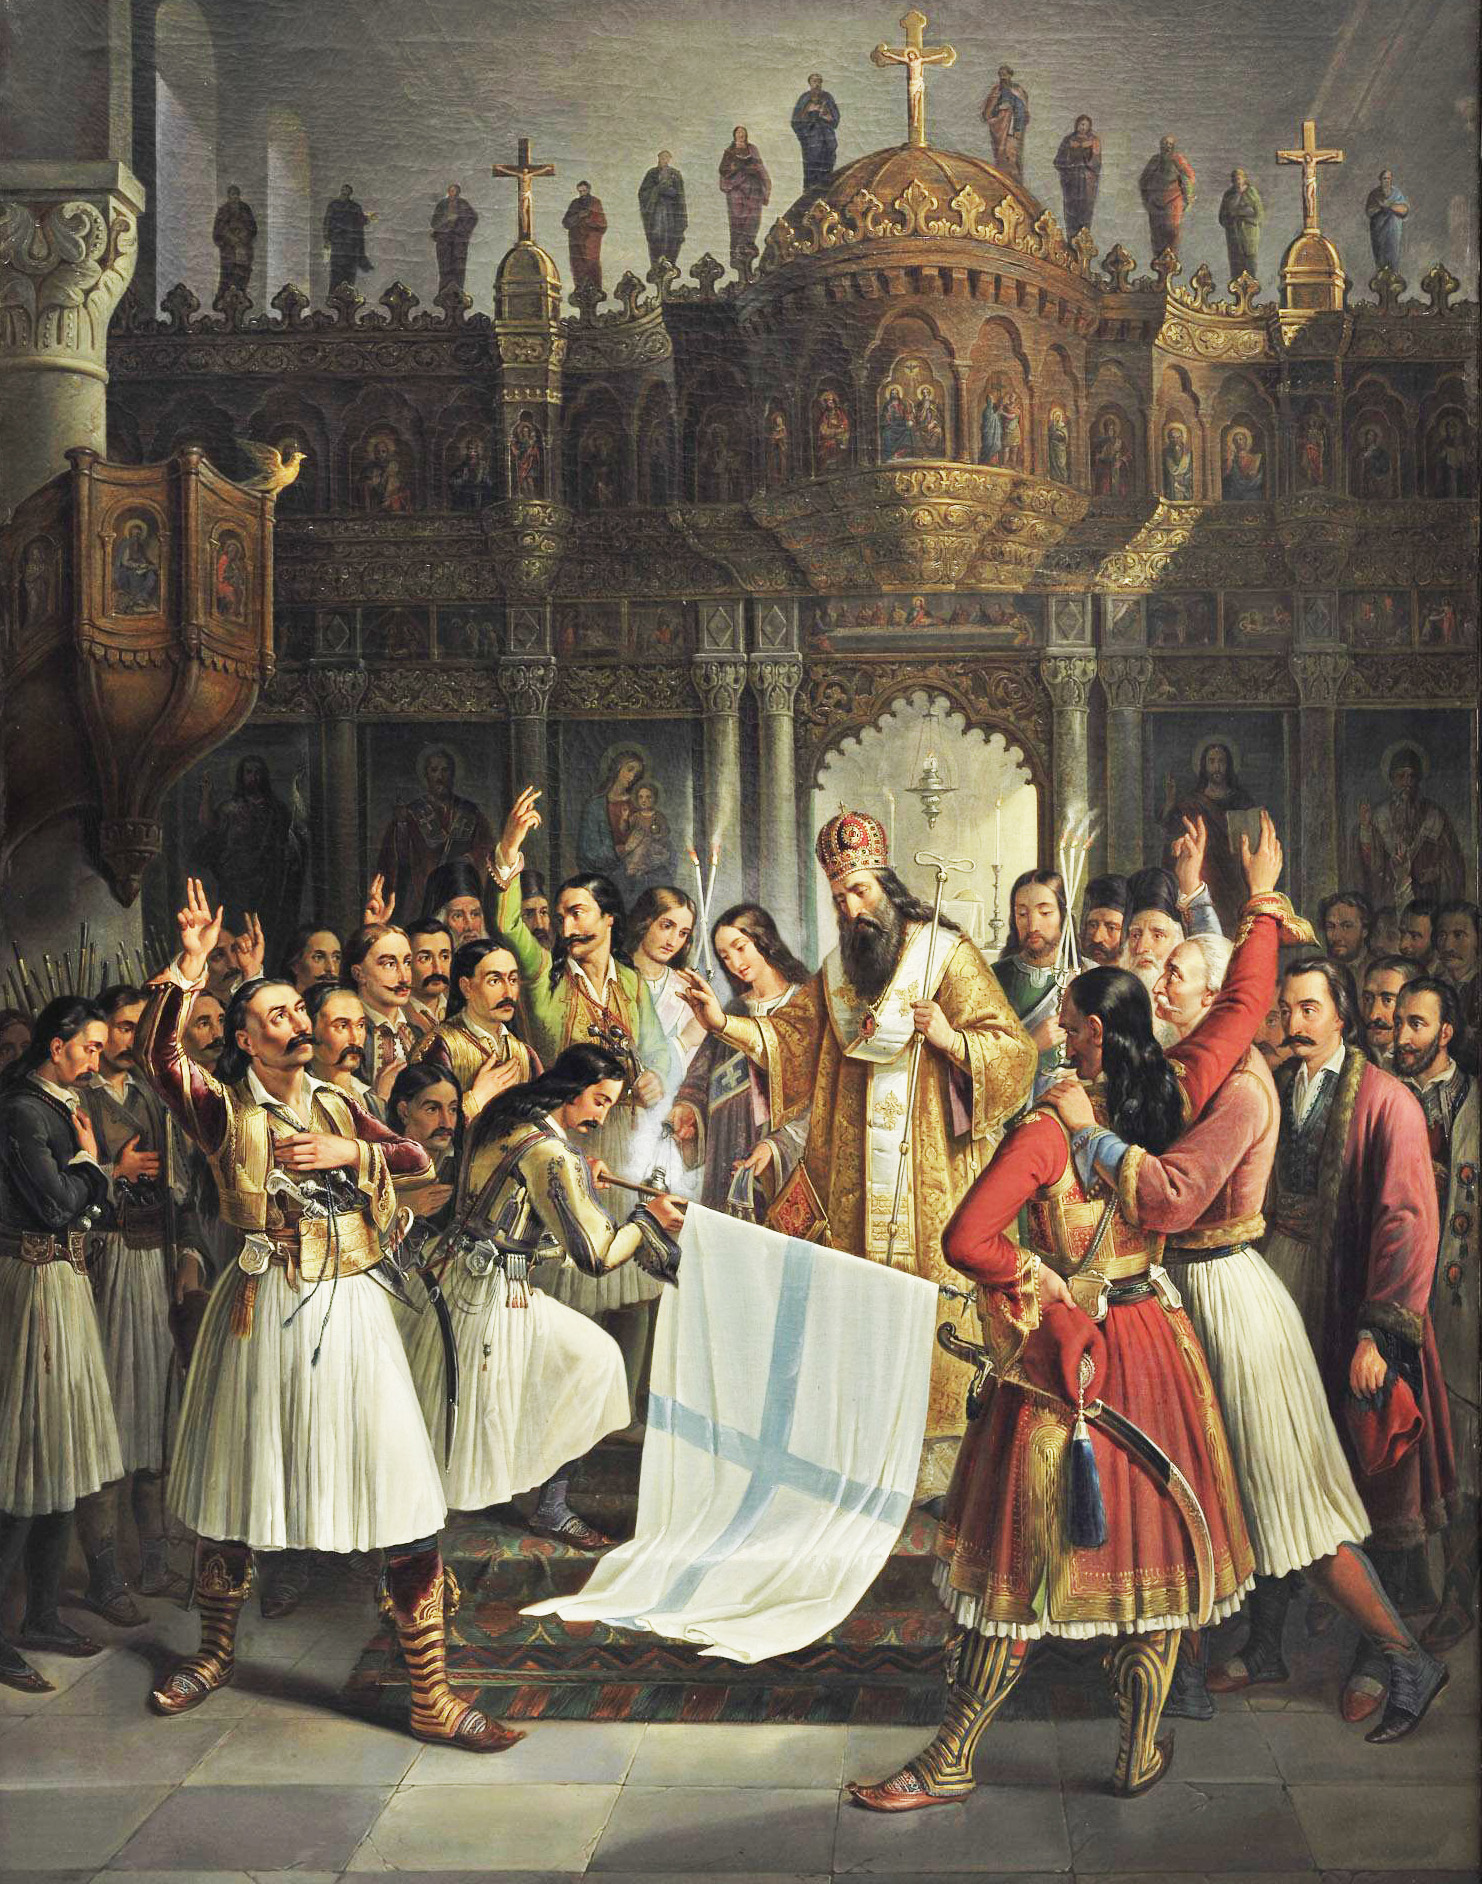 The Bishop of Old Patras Germanos Blesses the Flag of Revolution, 1865 Oil on canvas, by Vryzakis Theodoros (1819 - 1878)